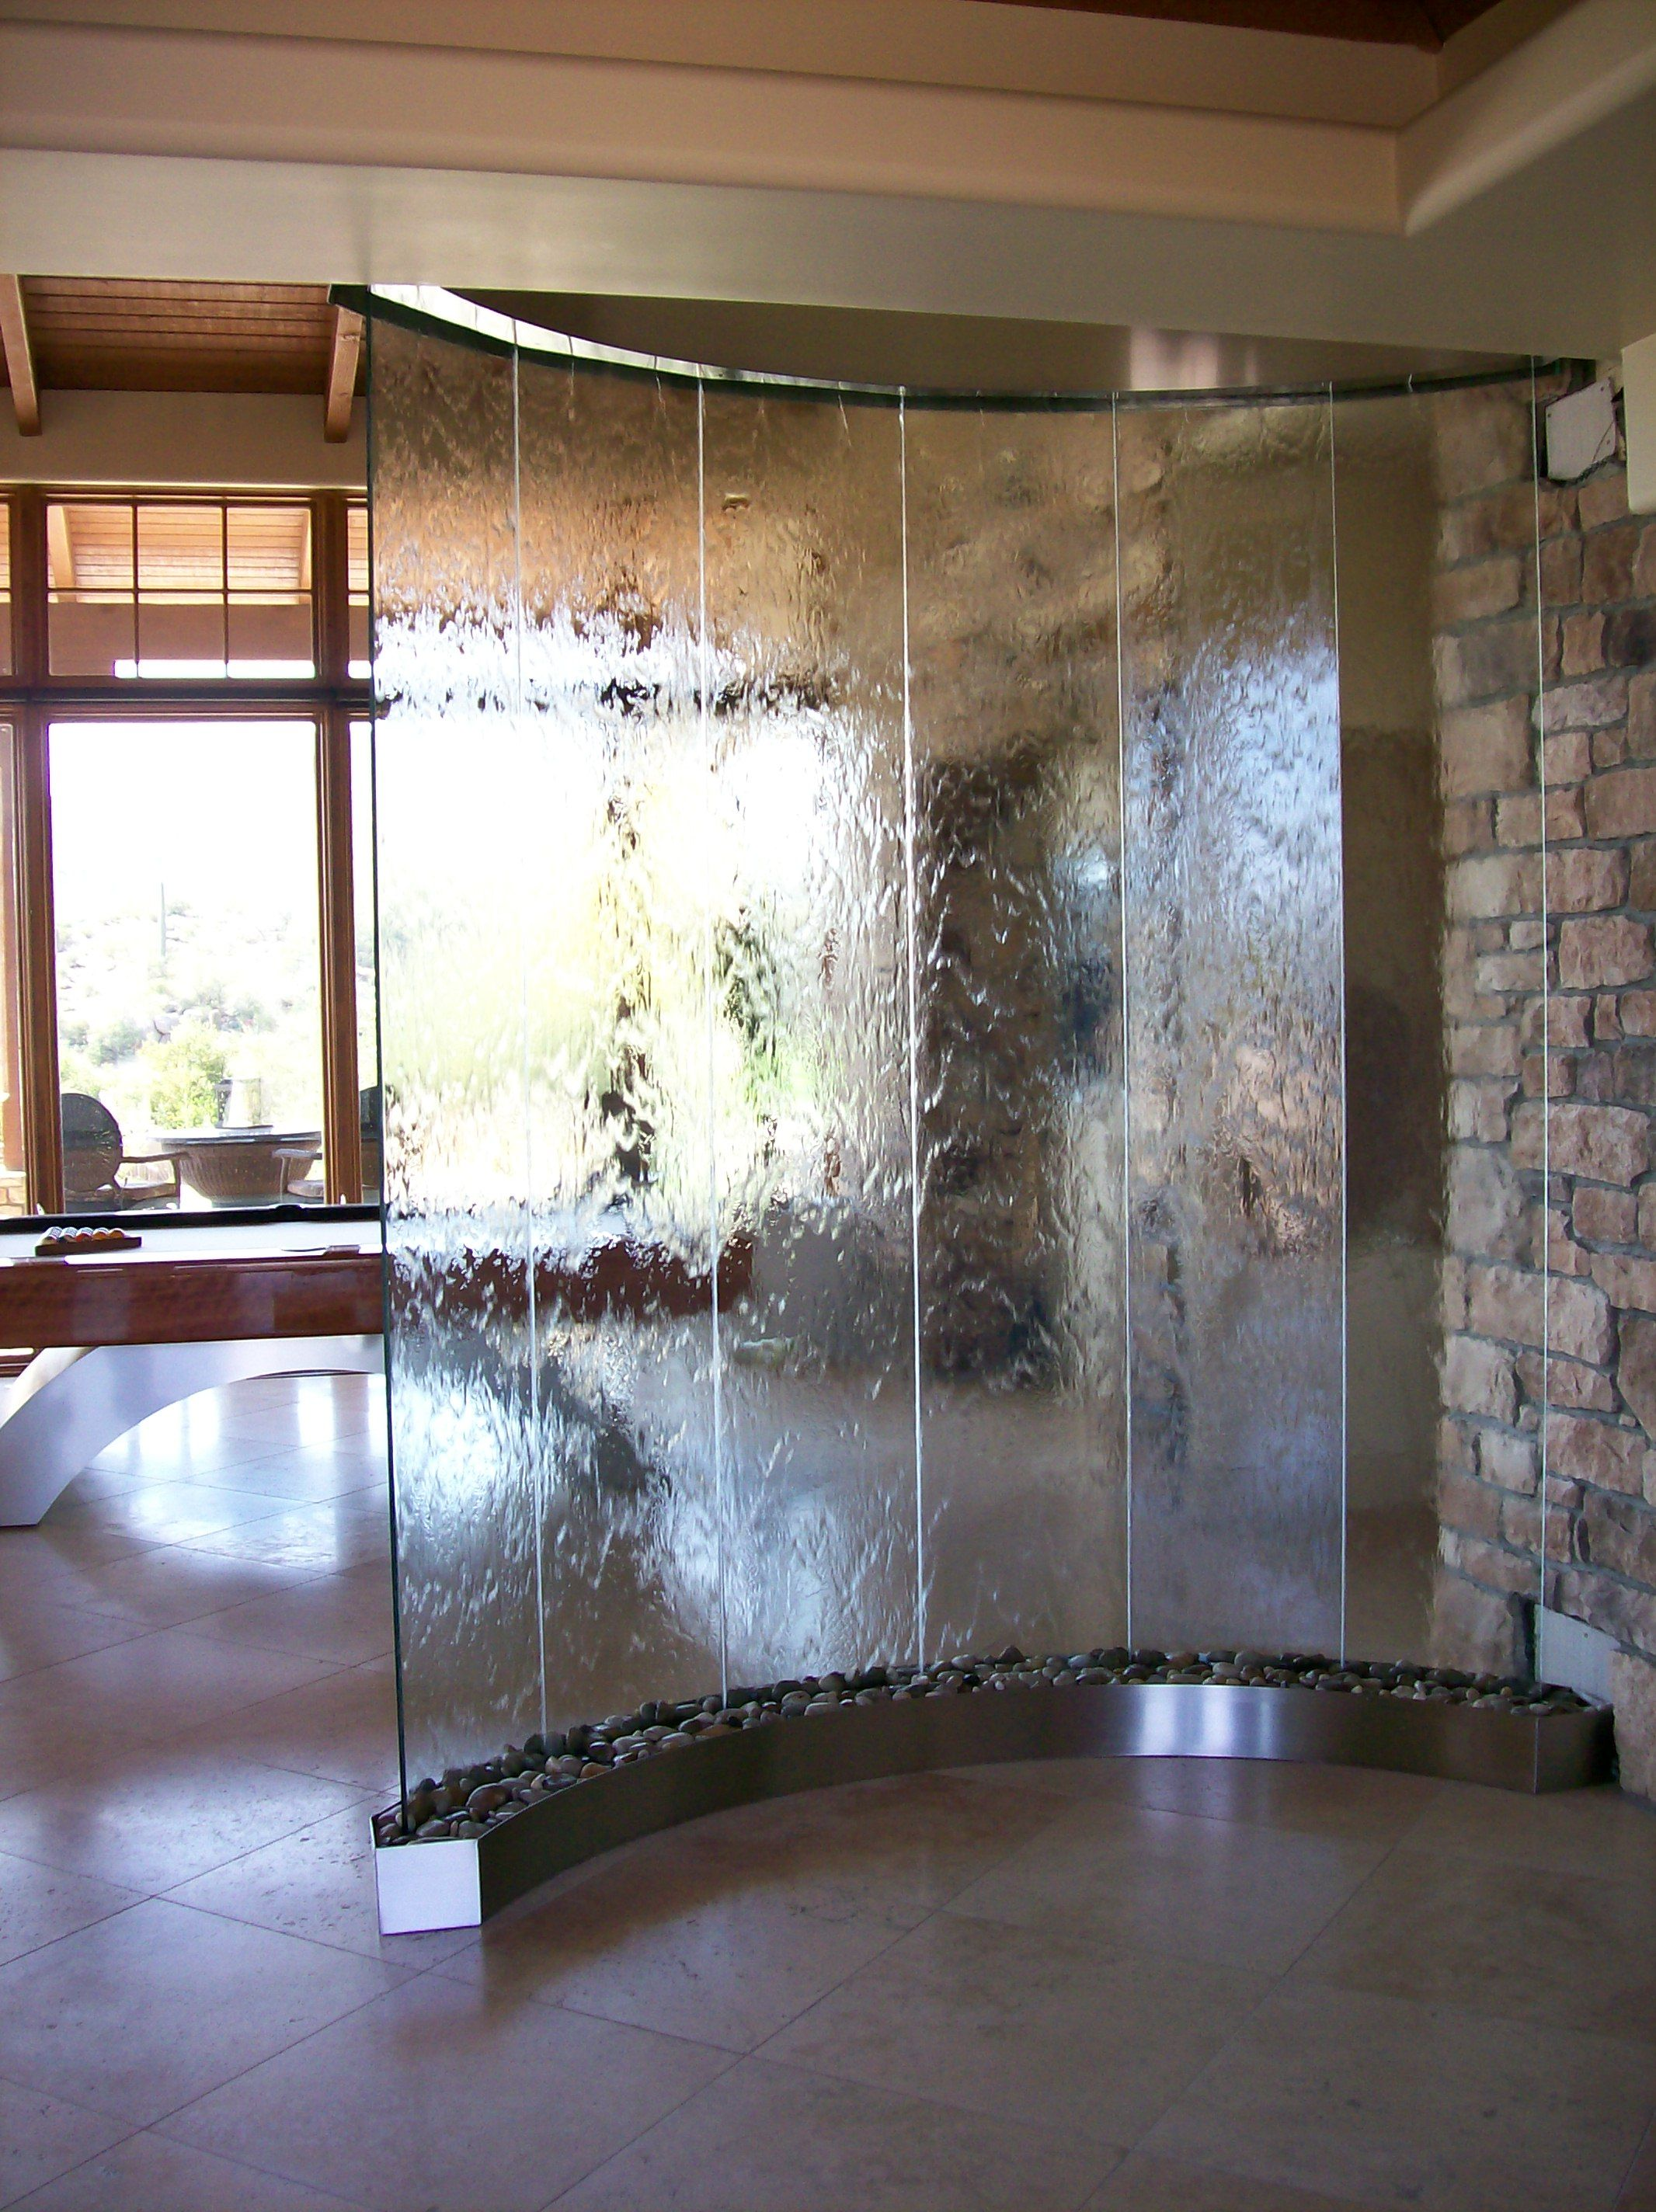 Glass Wall Fountains Indoor | Water Fountains | Pinterest ...